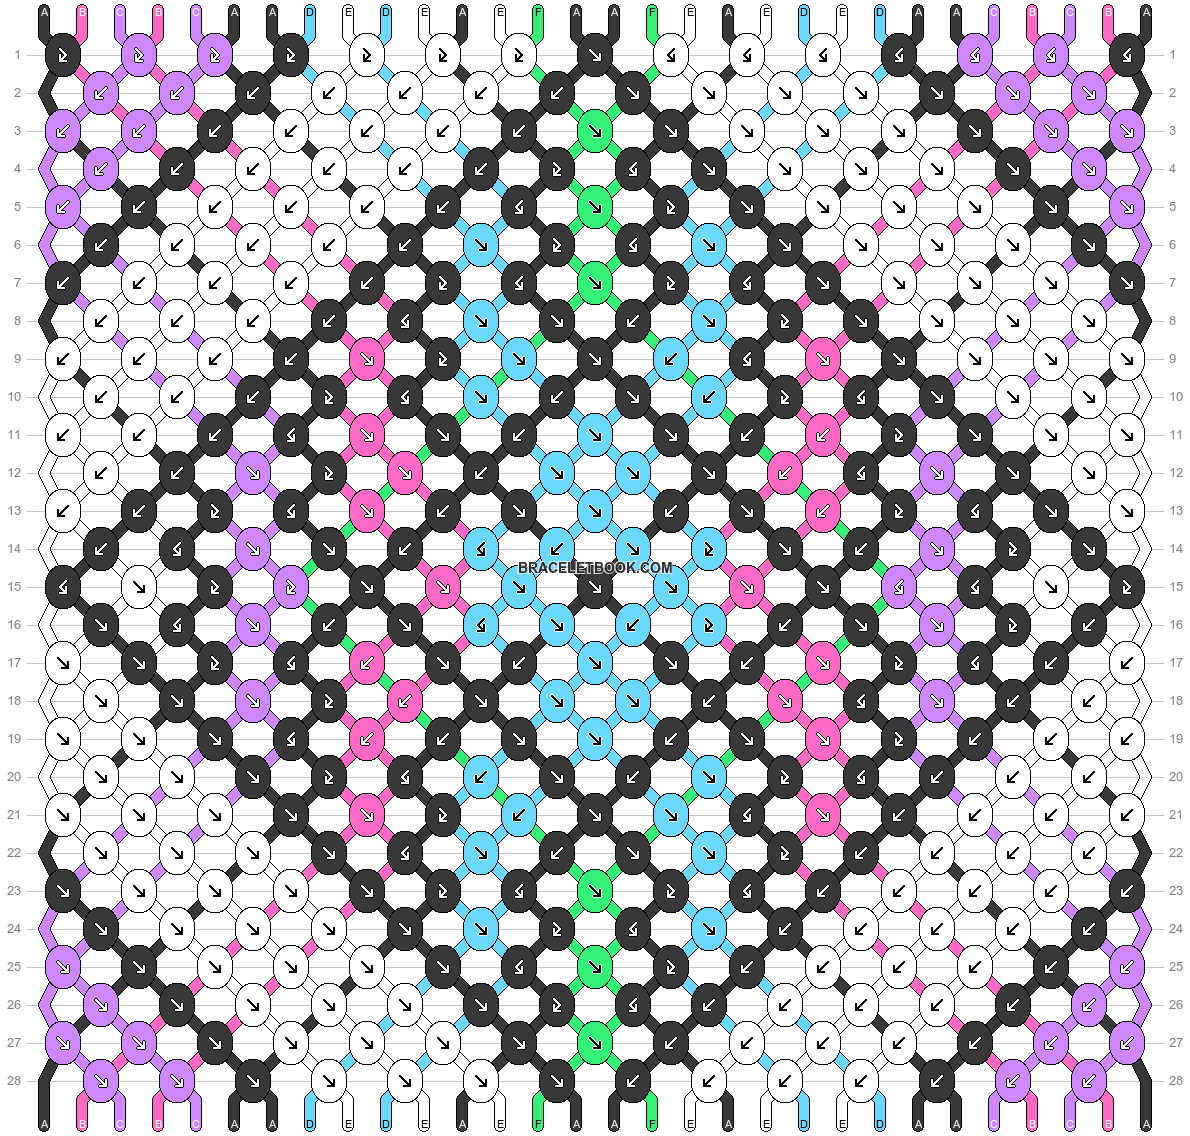 Normal Pattern #22384 added by clairehair